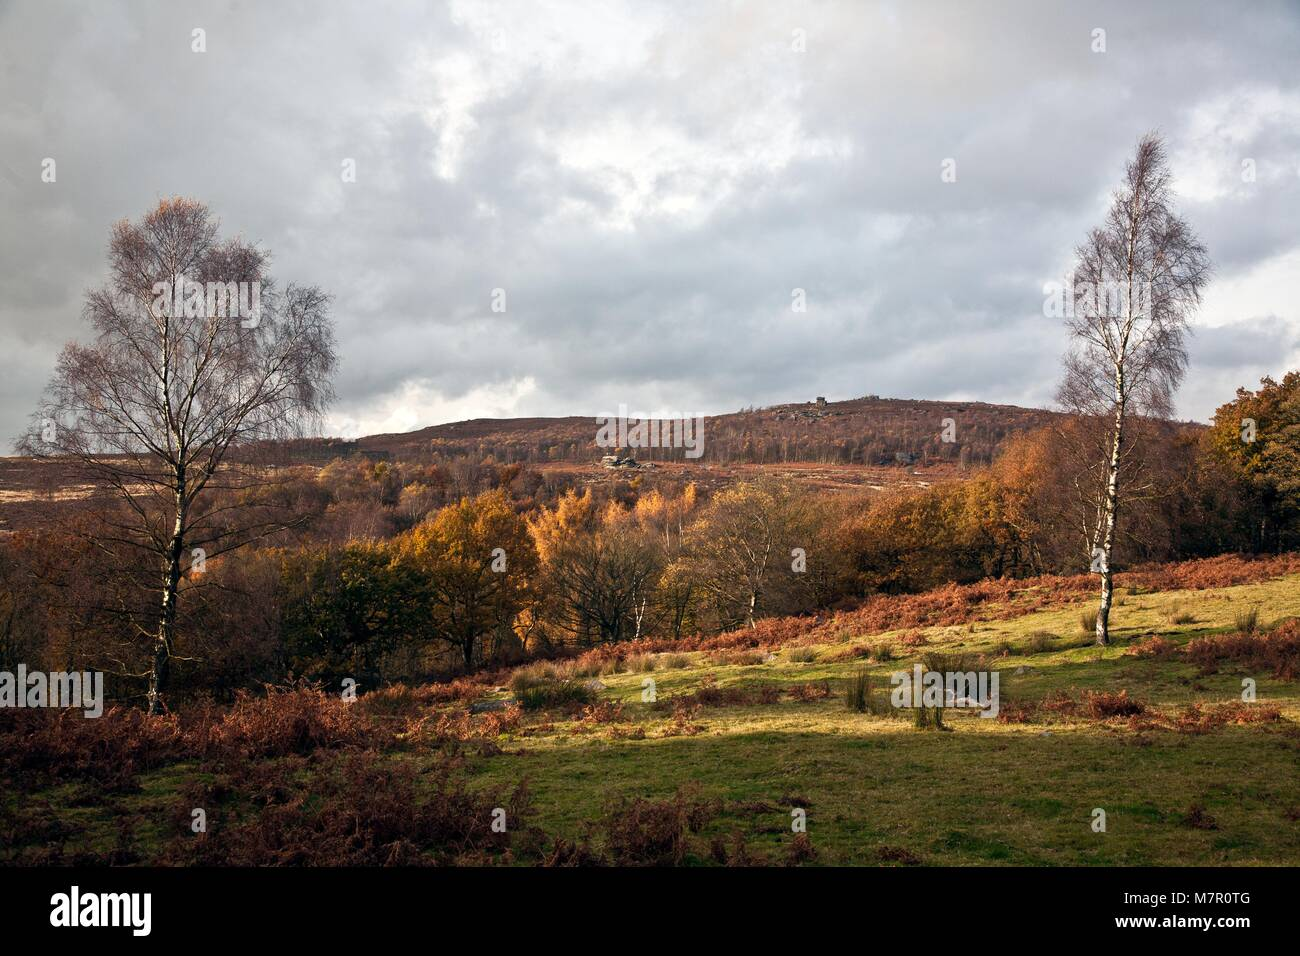 MOTHER CAP TOR AND SUMMIT AS SEEN FROM LONGSHAW PEAK DISTRICT NATIONAL PARK - Stock Image